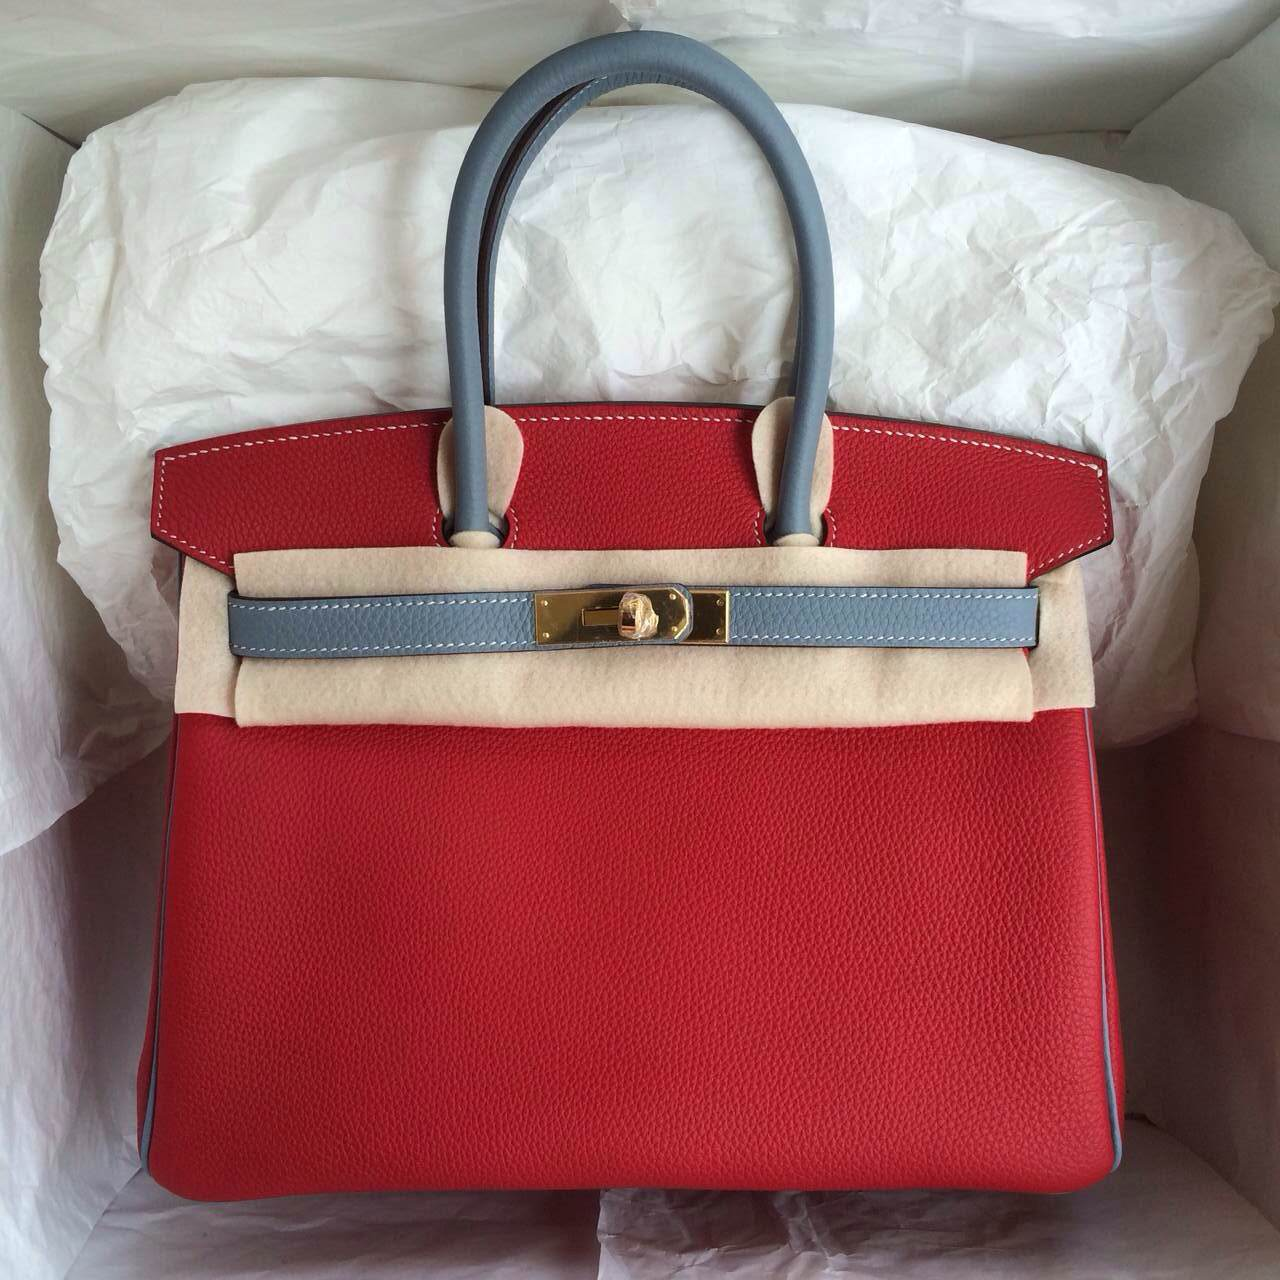 Fashion Hermes Birkin Bag 30cm Q5 Candy Red/J7 Blue Lin France Togo Leather